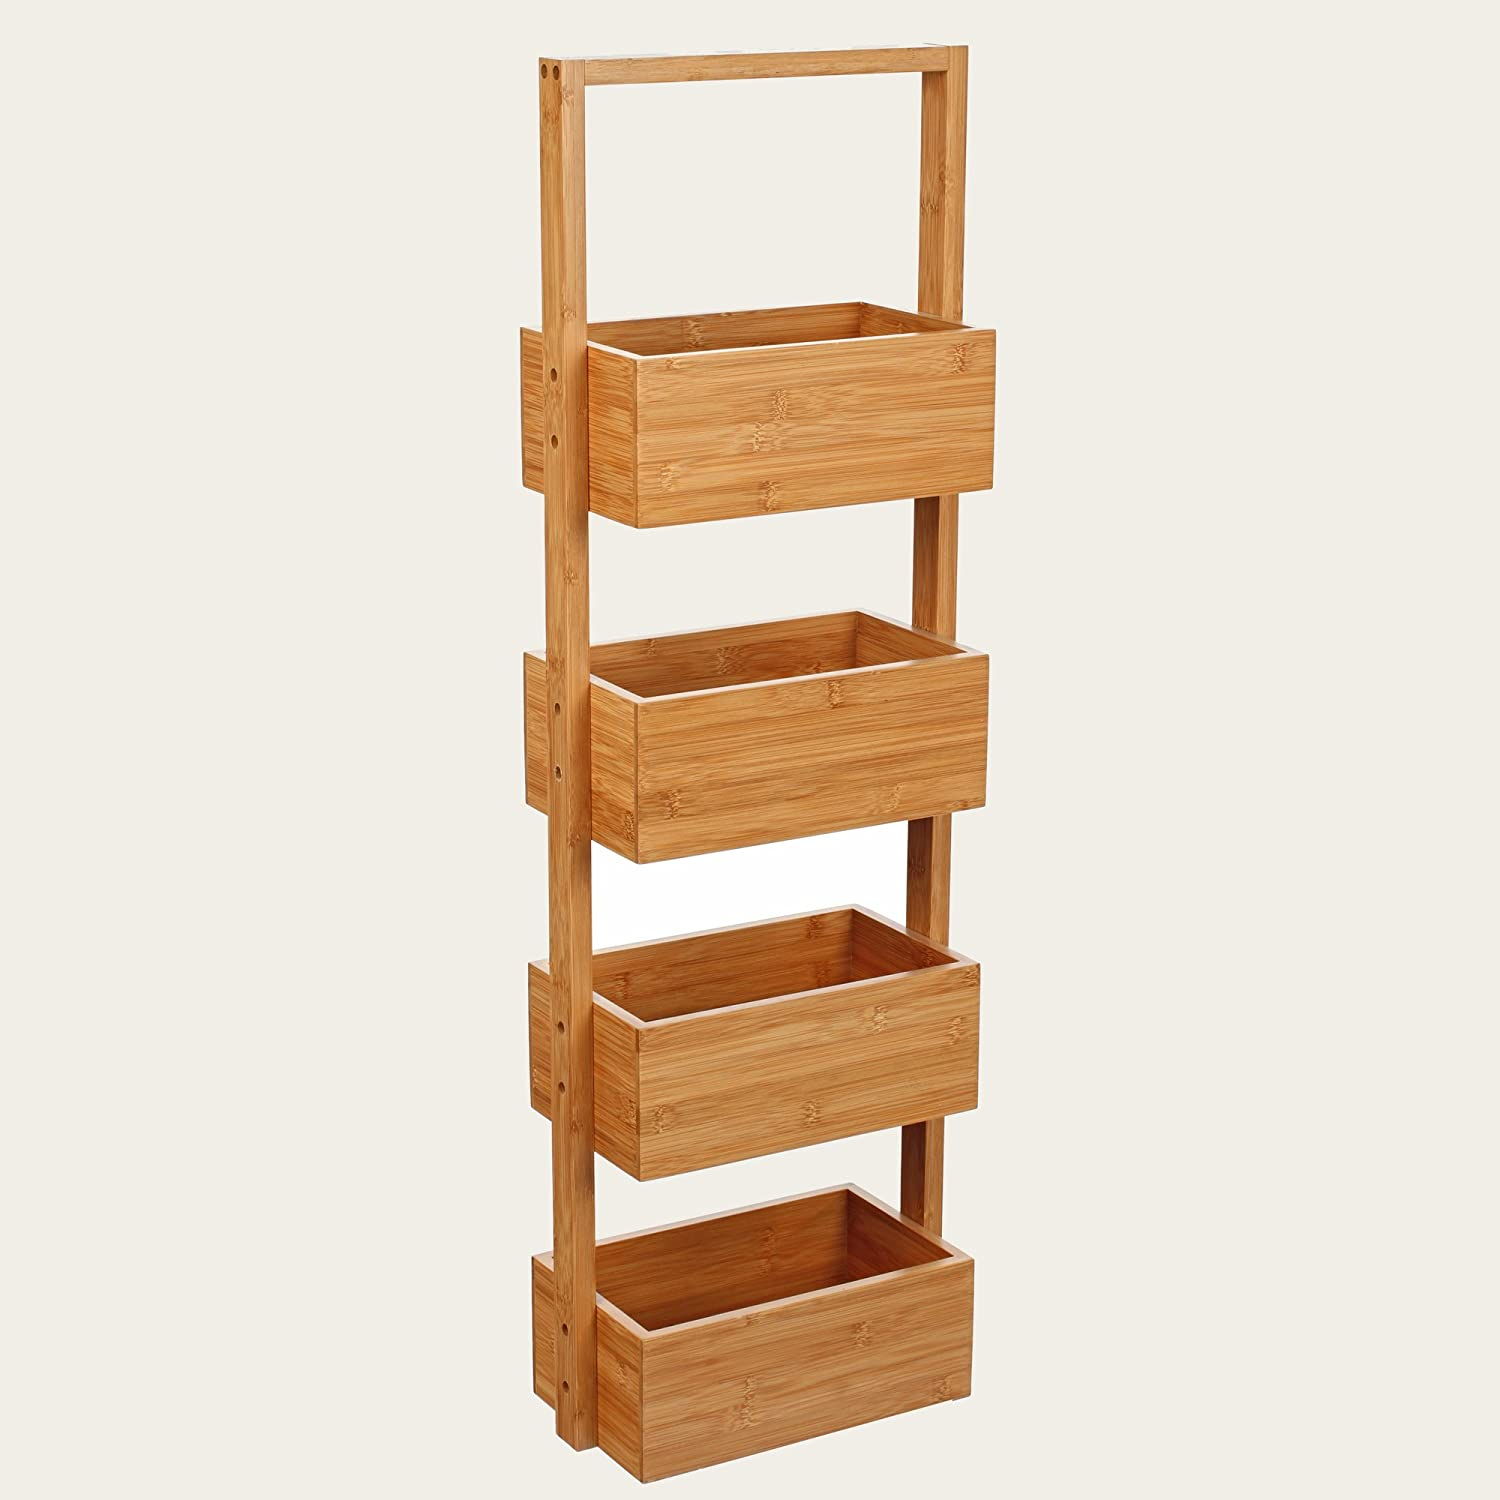 Bamboo shelf unit with four baskets - ideal for bathroom use. Bambou